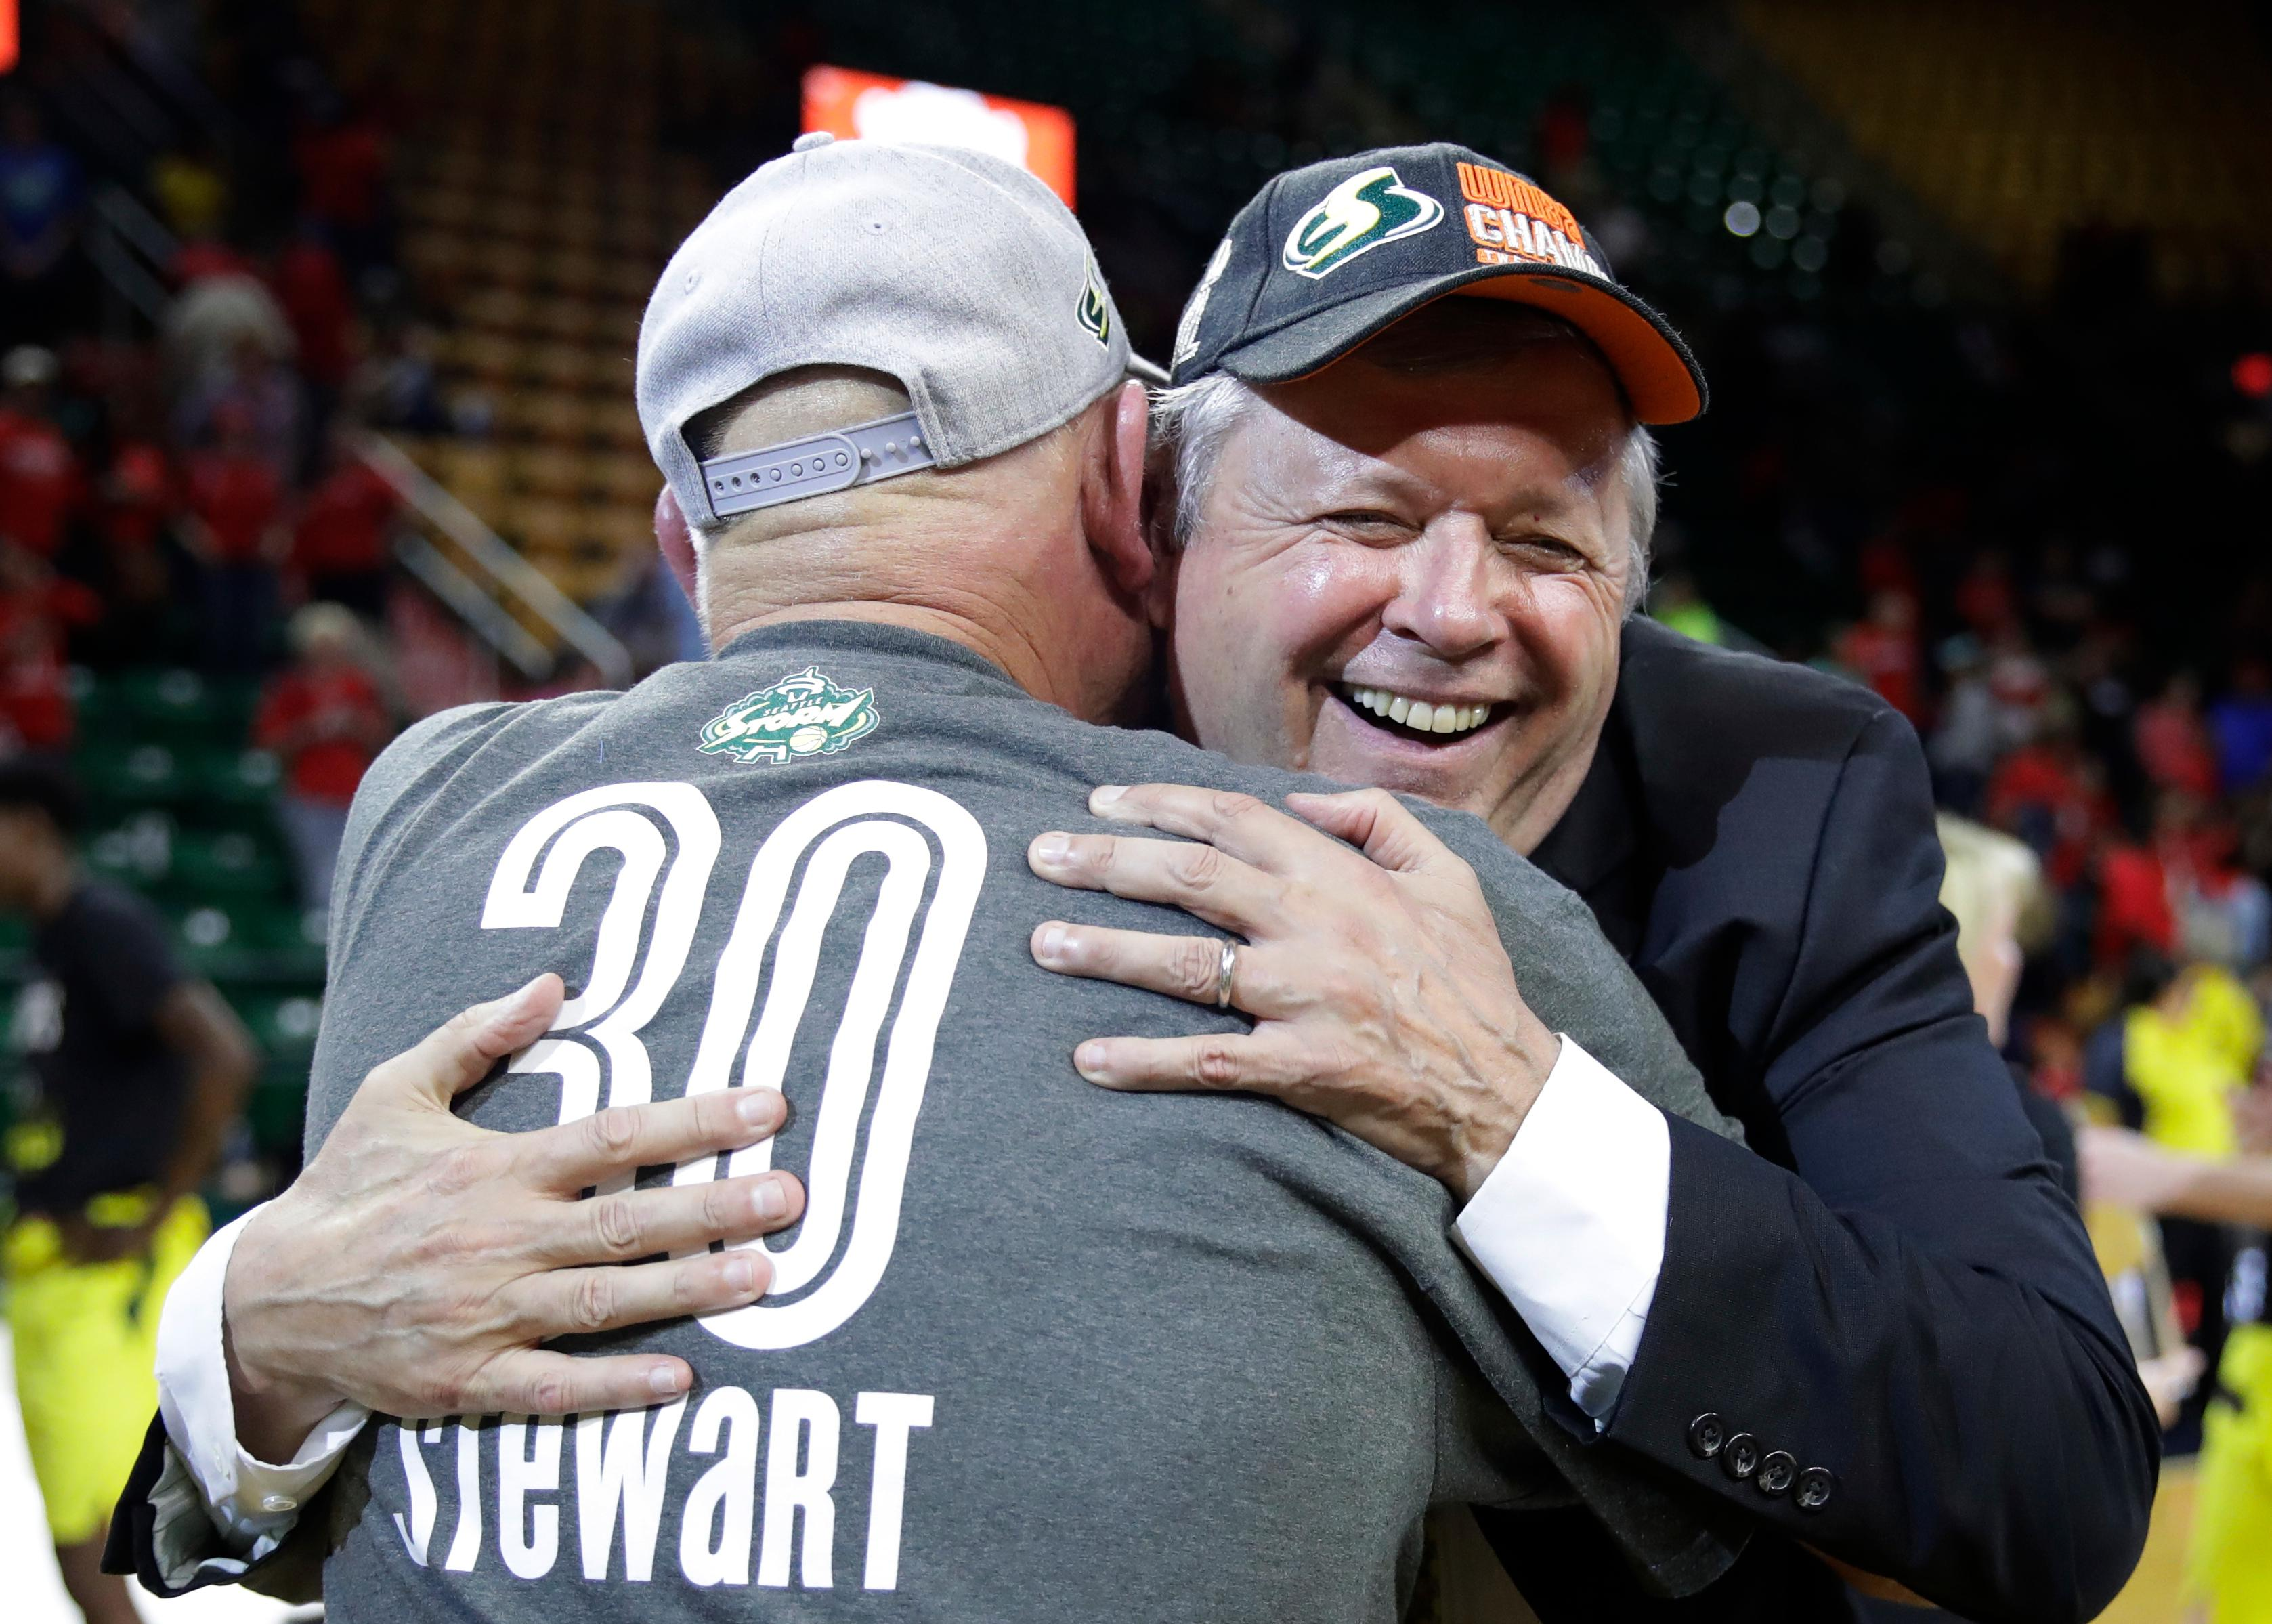 Seattle Storm head coach Dan Hughes hugs a fan on the court after winning Game 3 of the WNBA basketball finals, Wednesday, Sept. 18 2018, in Fairfax, Va. The Seattle Storm defeated the Washington Mystics 98-82. (AP Photo/Carolyn Kaster)